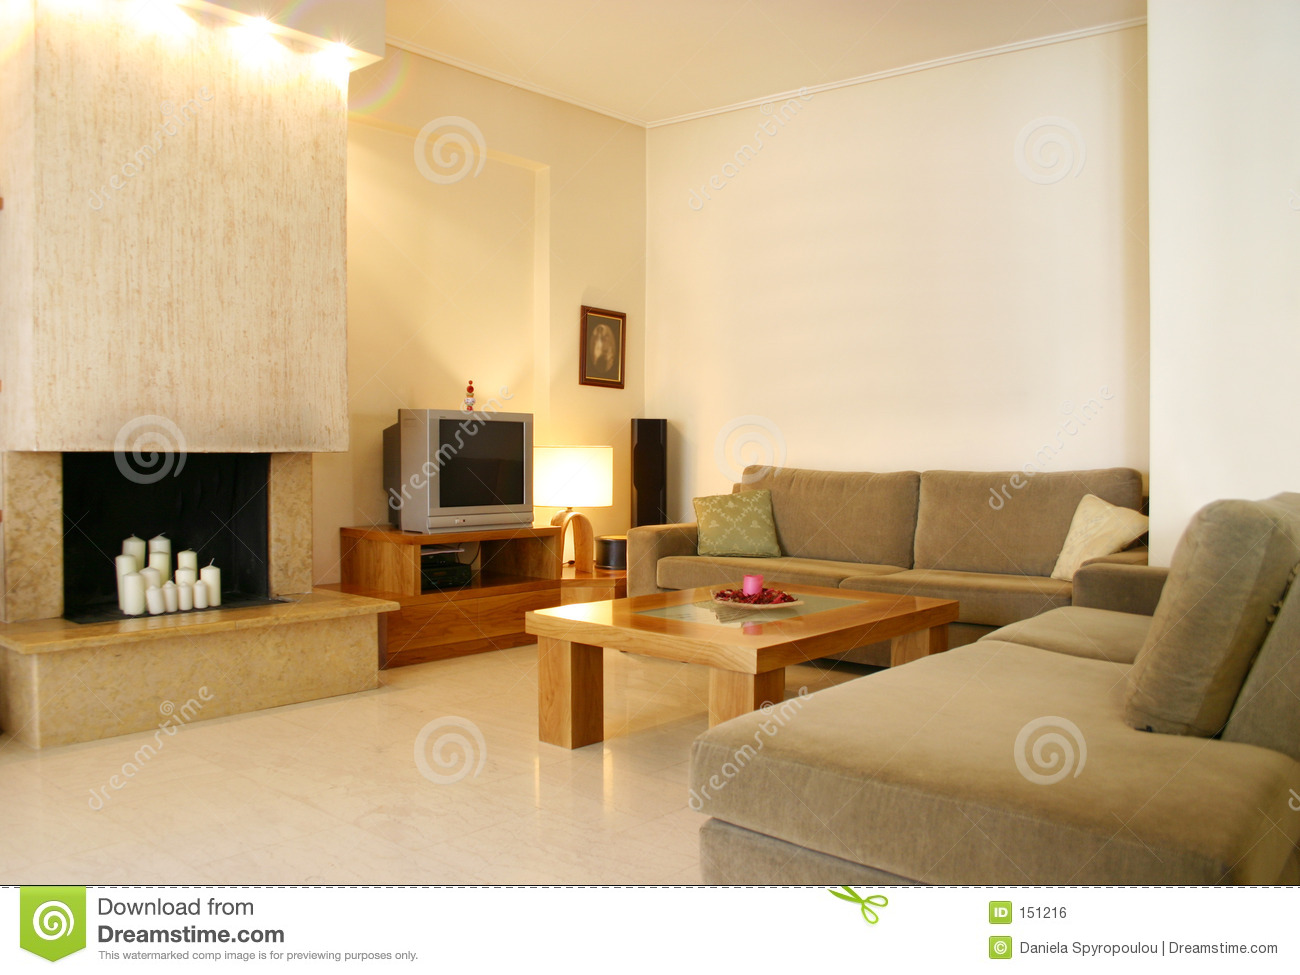 Home interior design stock photo image of modern decorating 151216 - Interior design for home ...